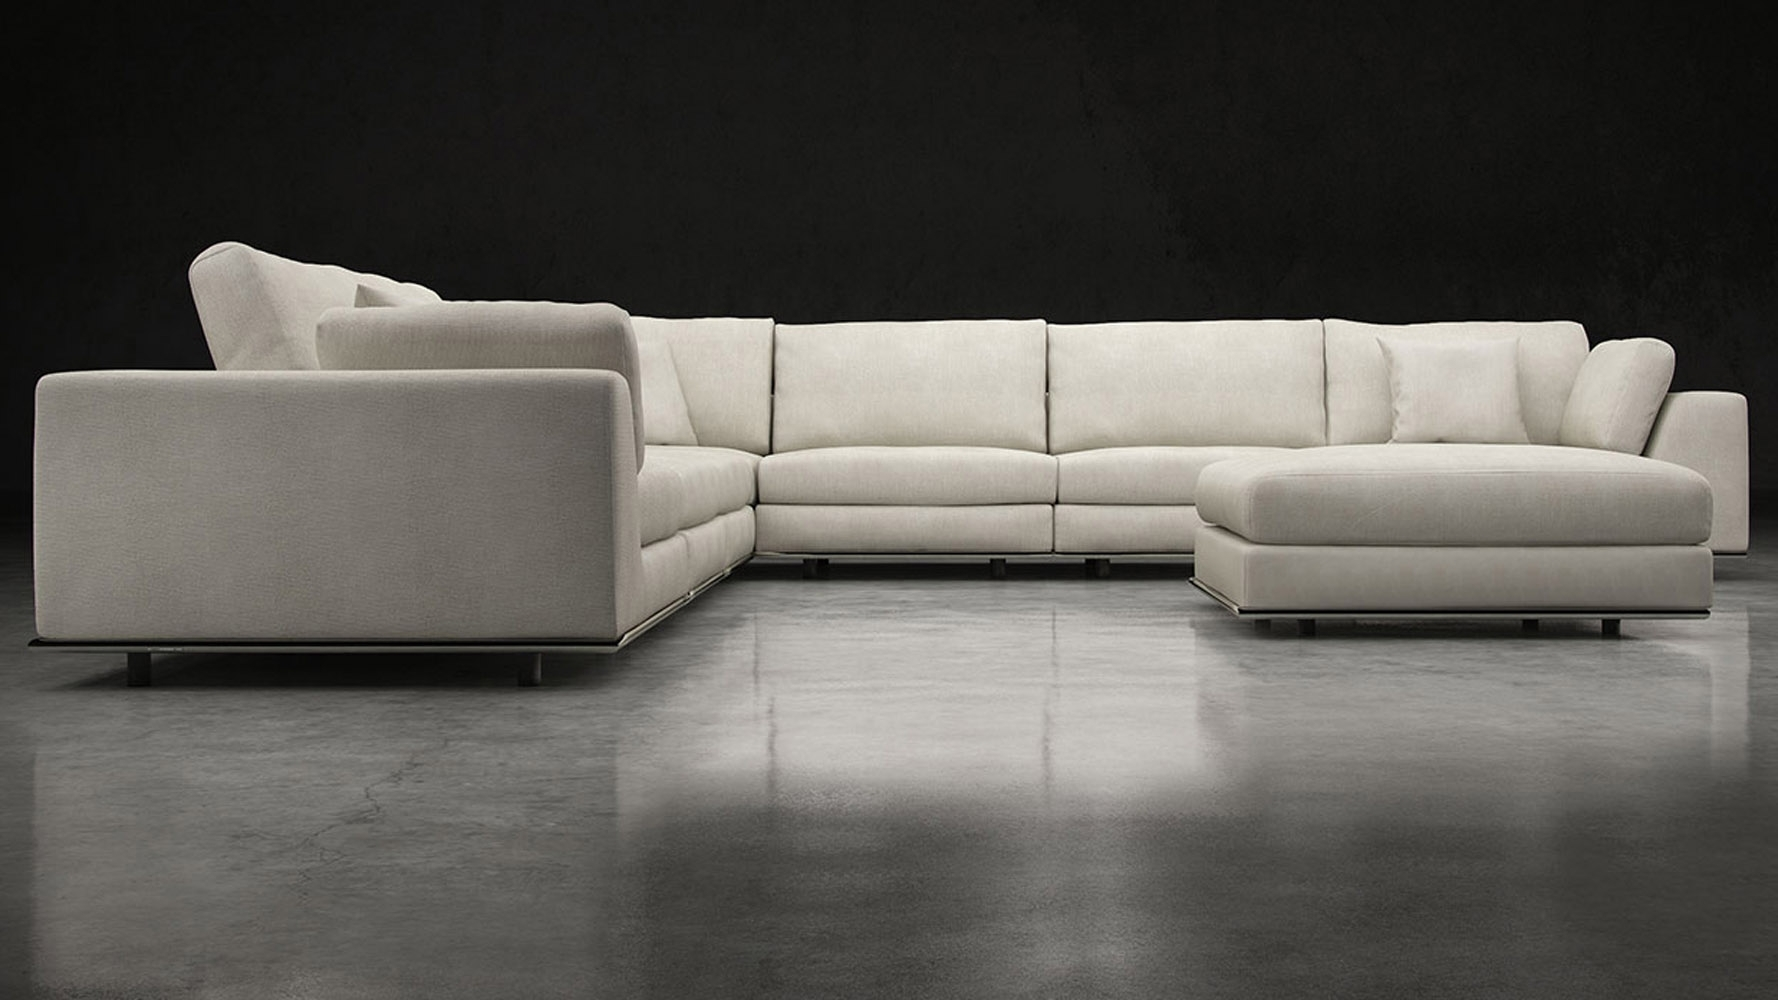 Furniture : Russian Hill Apartment Deep Seat Small Sectional Sofa within Kijiji Montreal Sectional Sofas (Image 5 of 10)